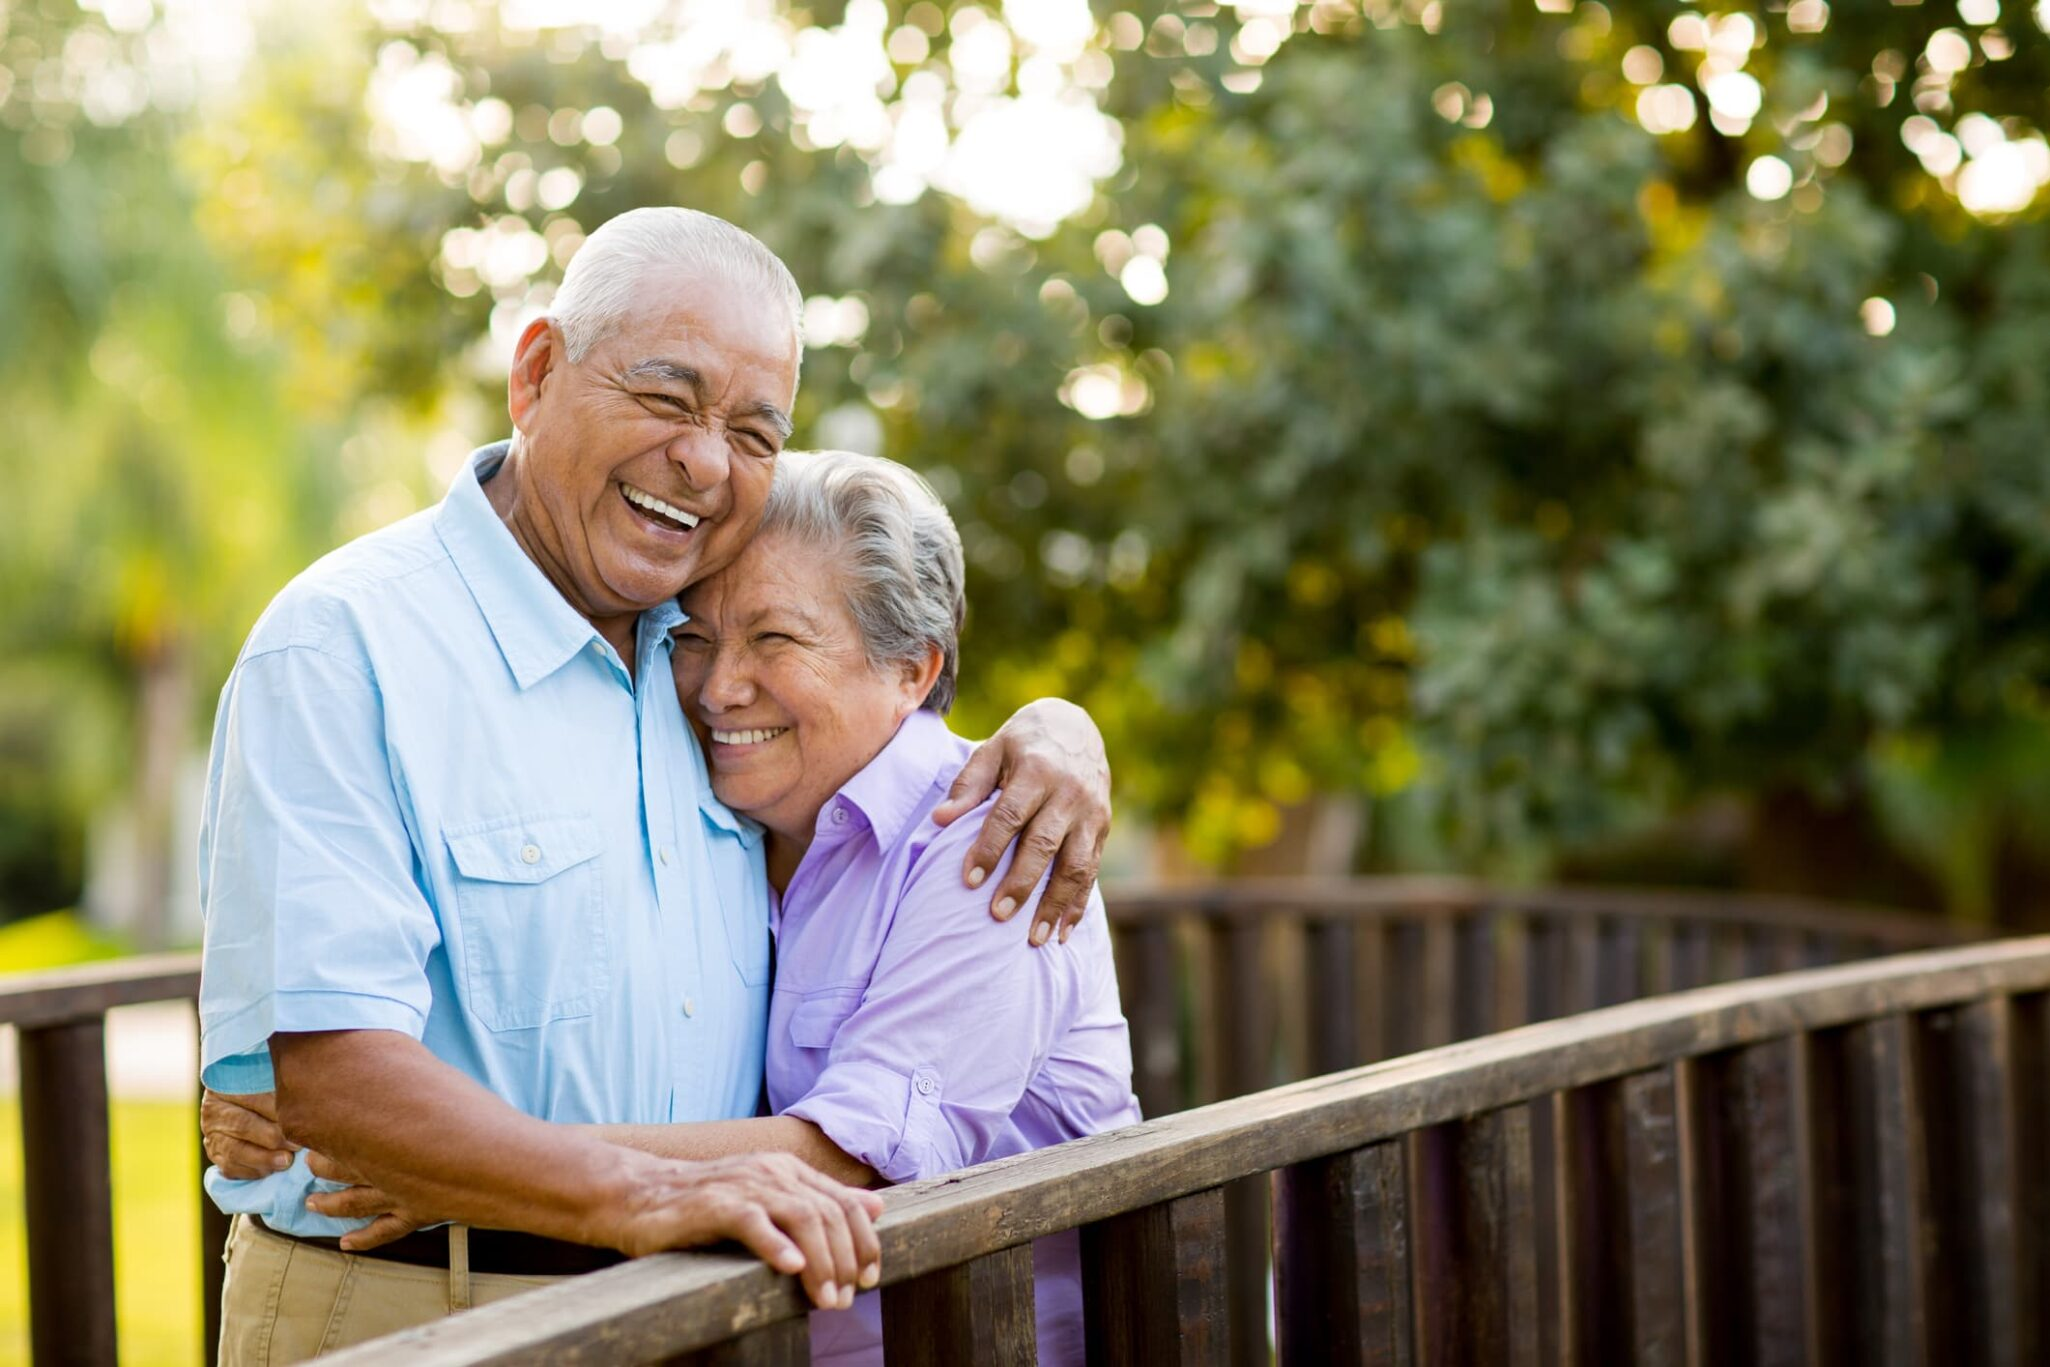 Older couple embracing on a bridge outdoors.